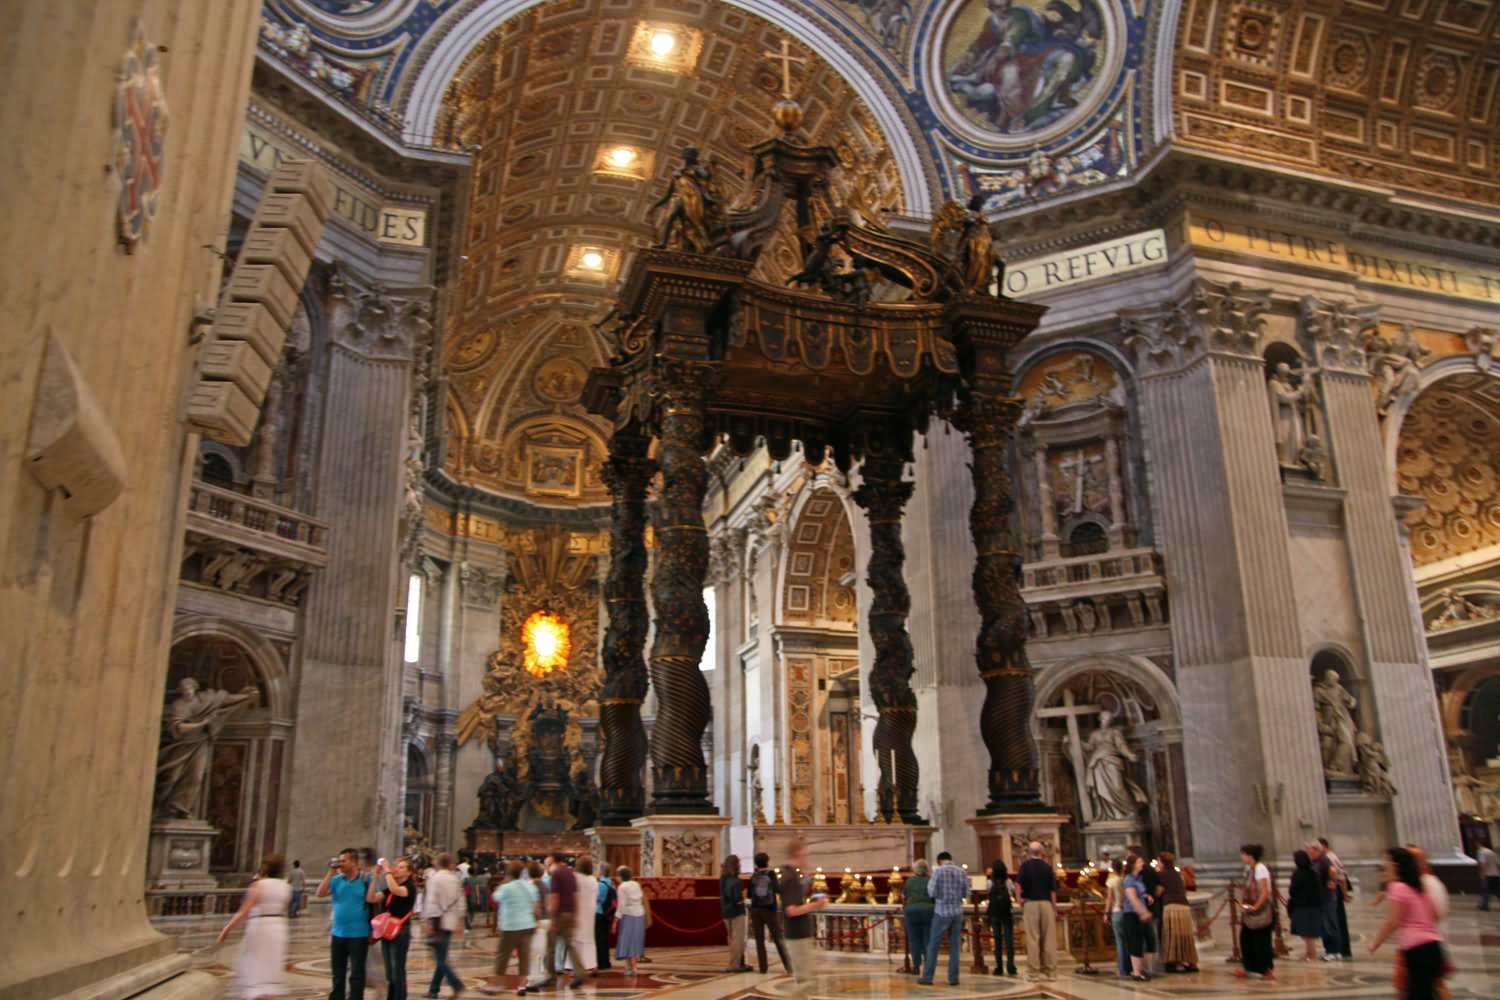 40 St. Peter's Basilica, Vatican City Pictures And Images